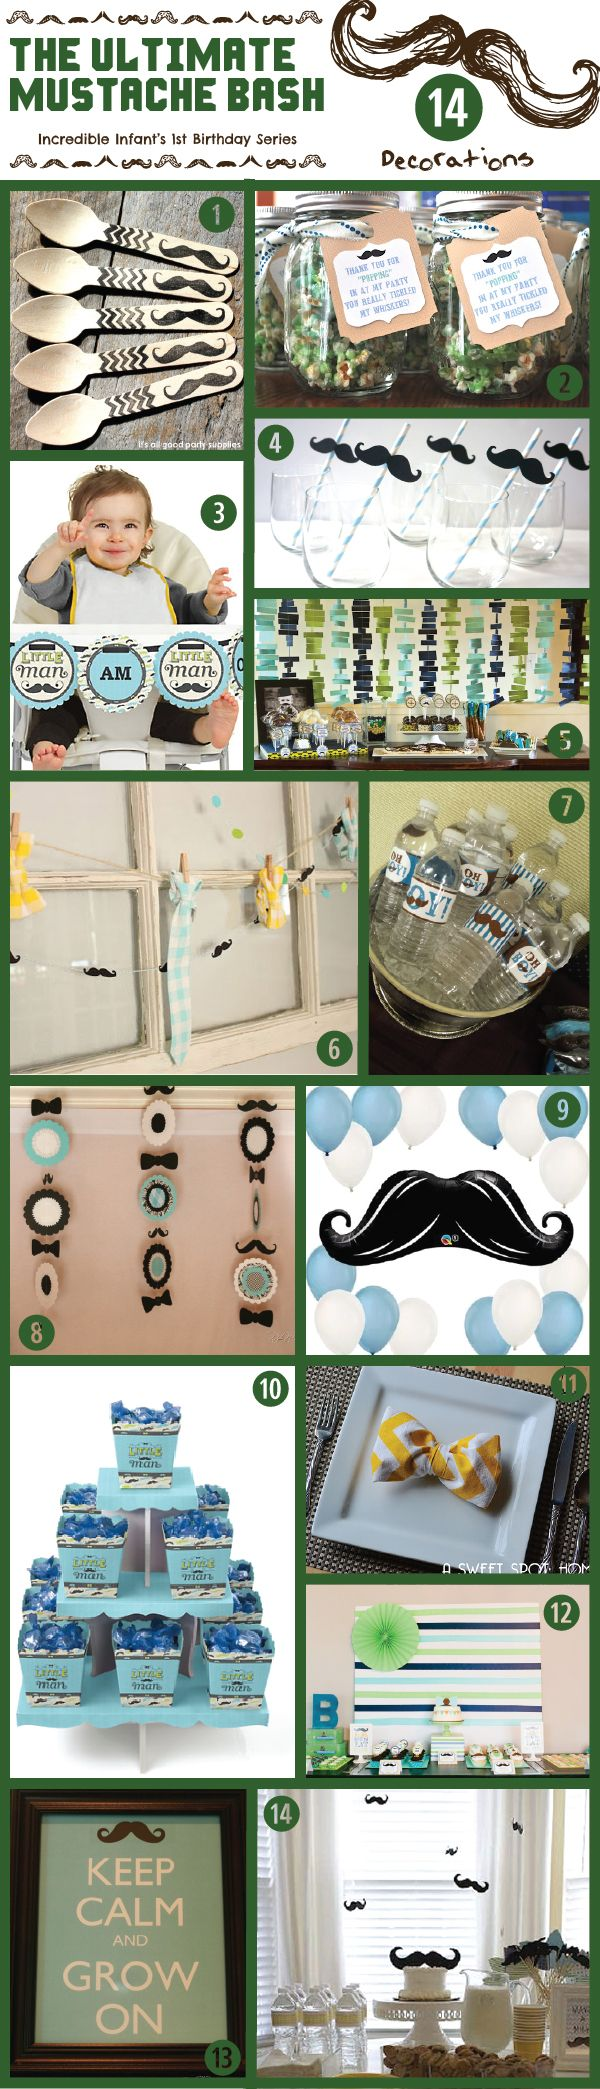 14 Decorating Ideas for The Ultimate Mustache Bash for Your Little Man's Birthday - http://www.incredibleinfant.com